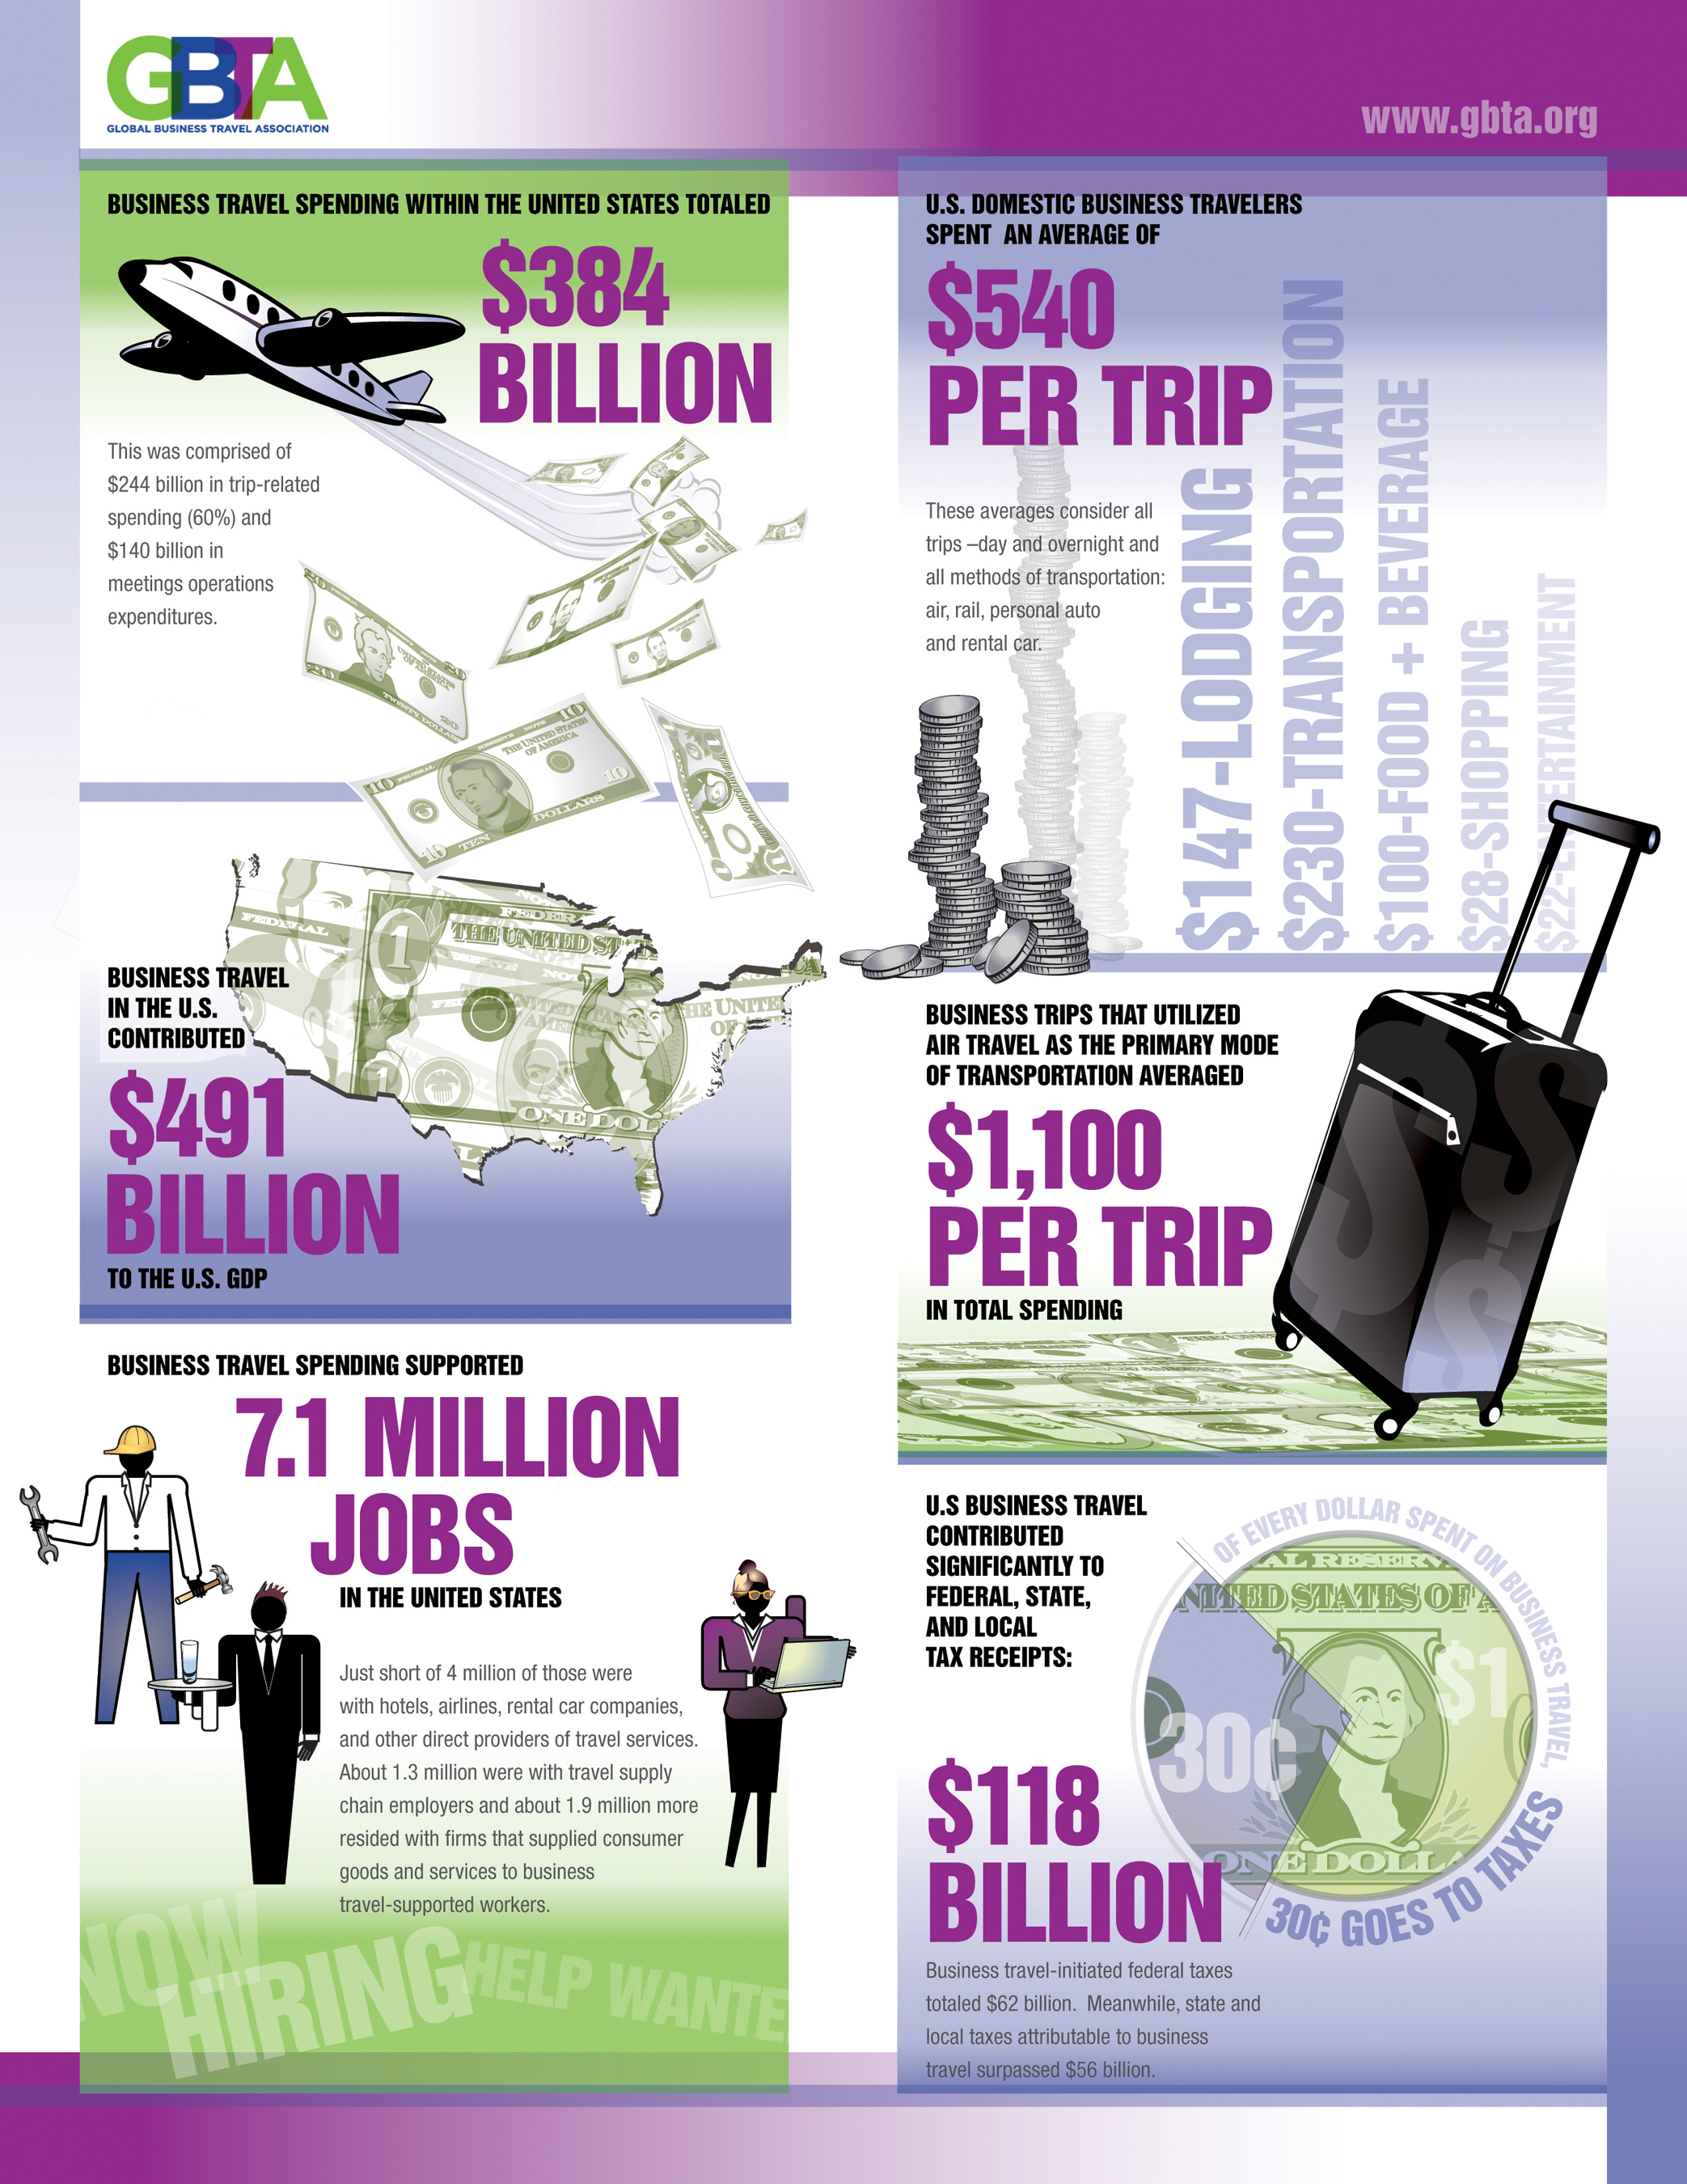 GBTA reveals the positive impact the business travel industry has on the U.S. economy.  (PRNewsFoto/Global Business Travel Association)